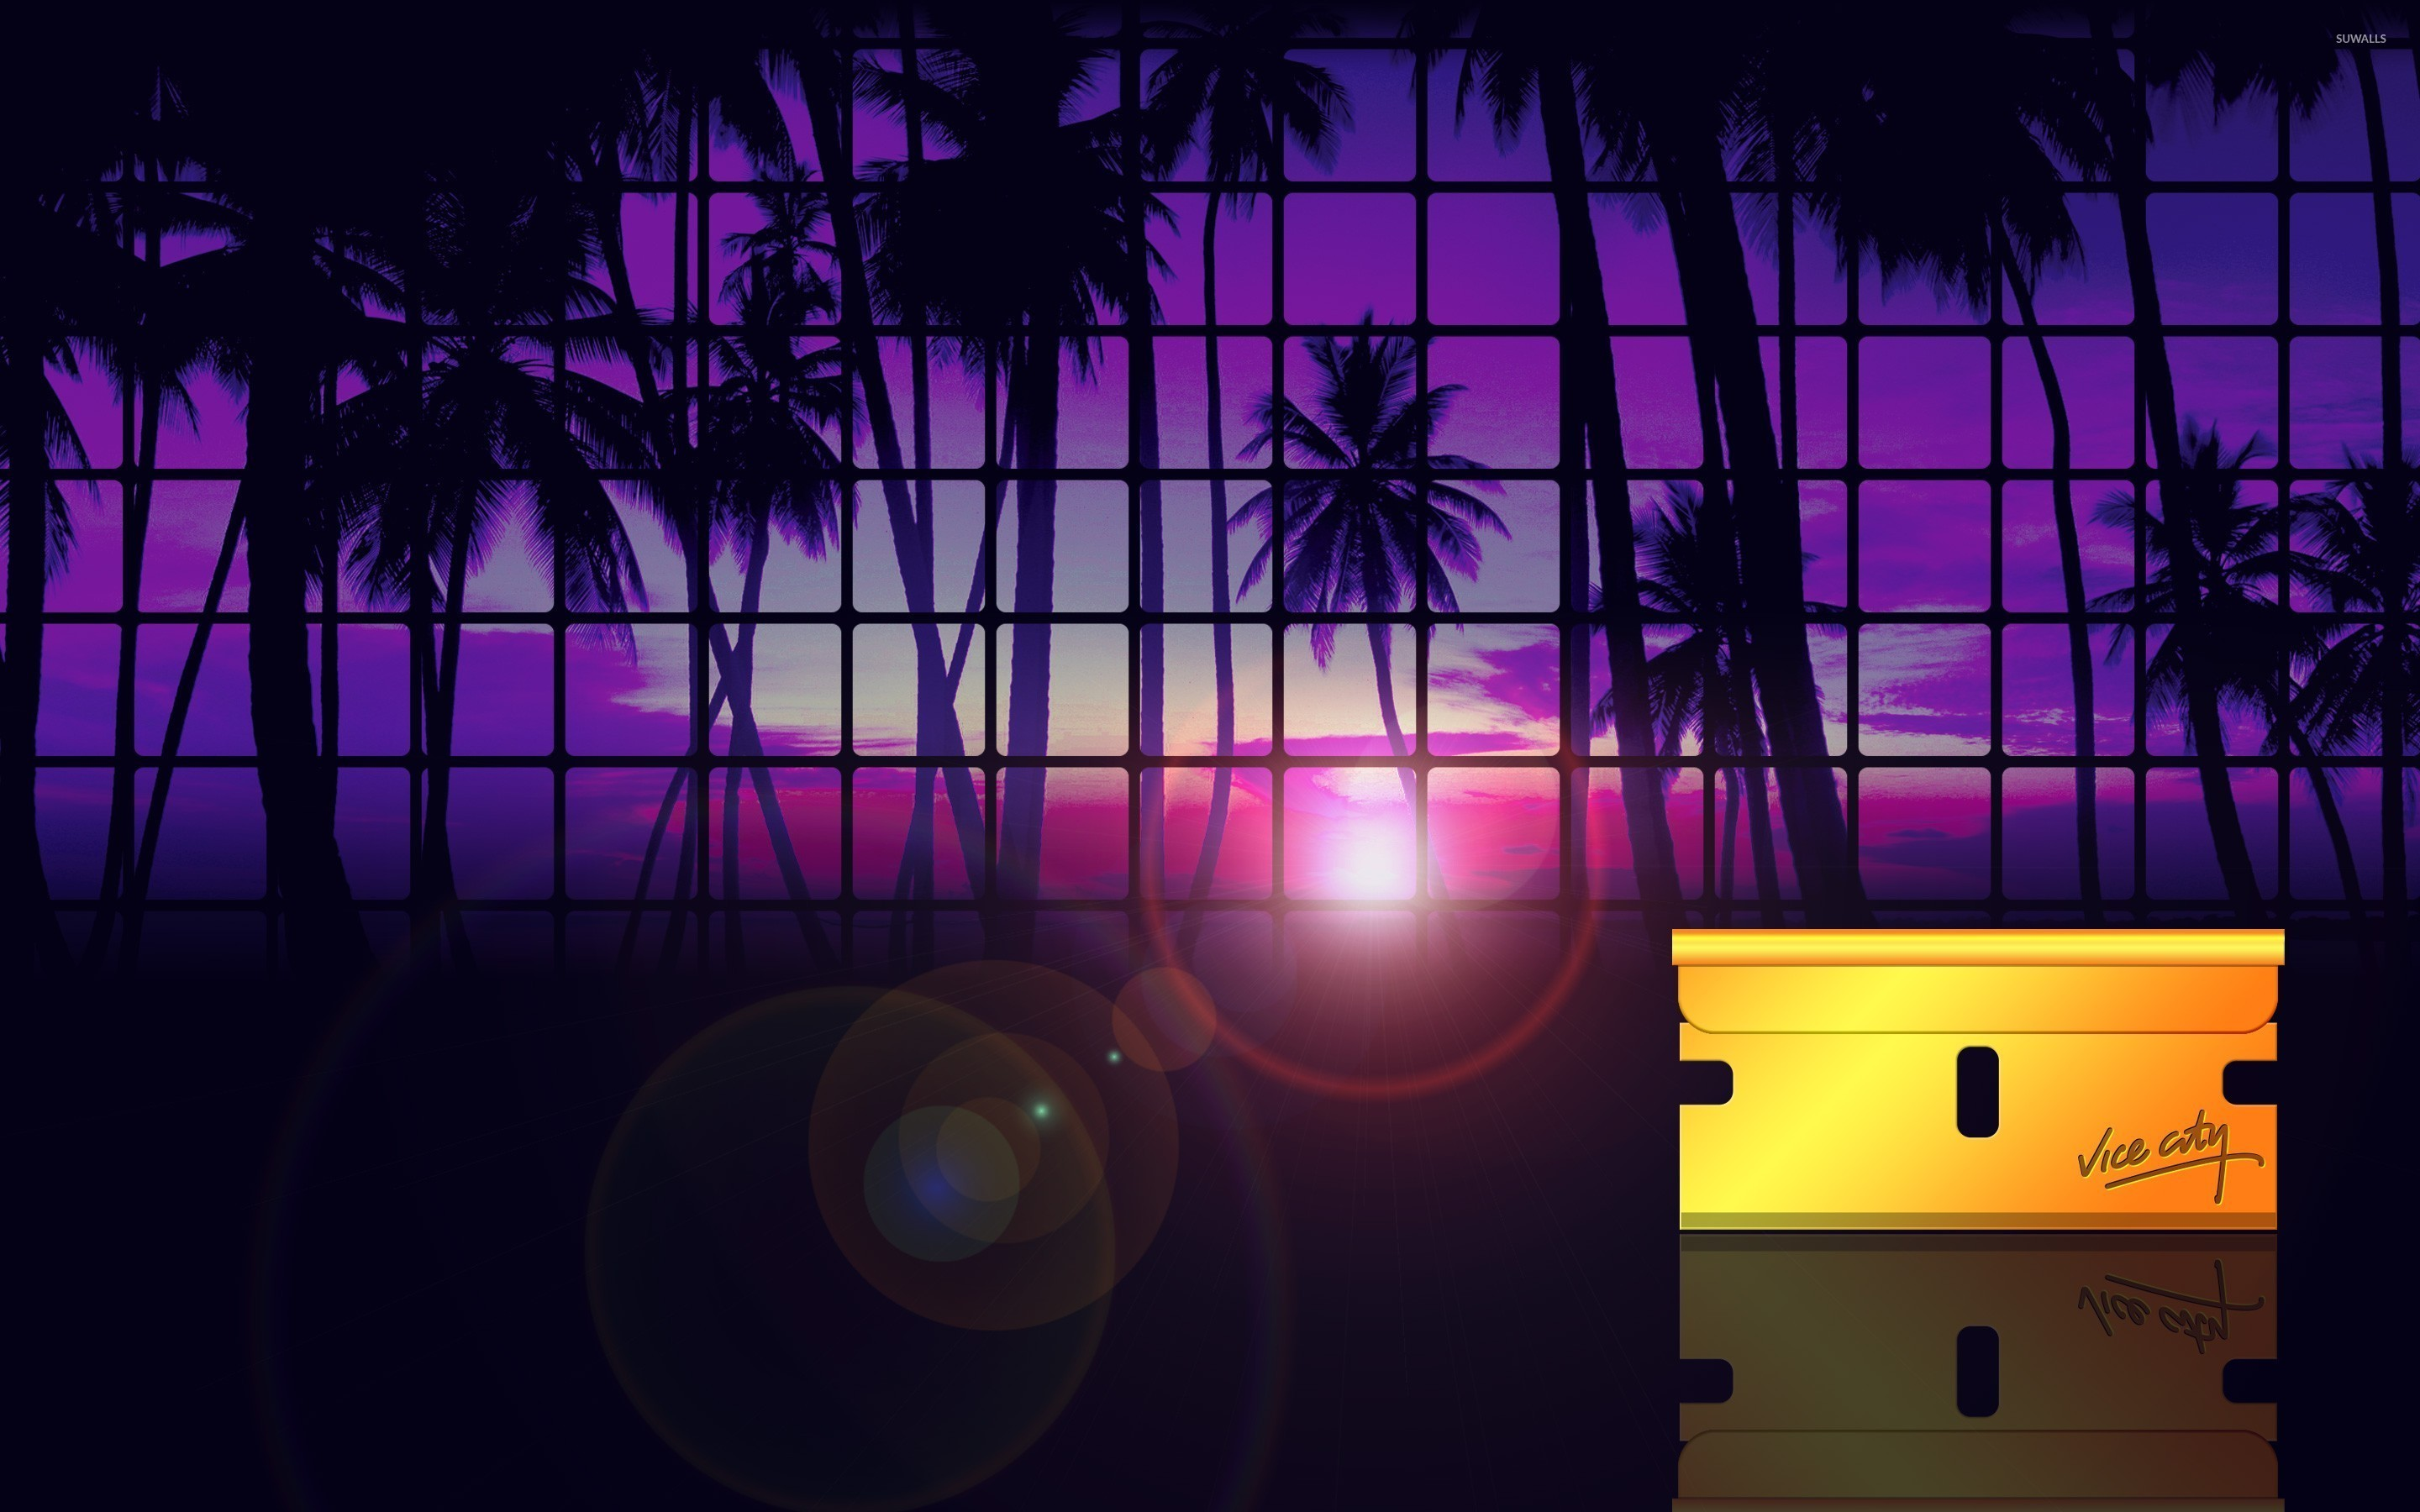 2880x1800 Grand Theft Auto: Vice City sunset wallpaper  jpg